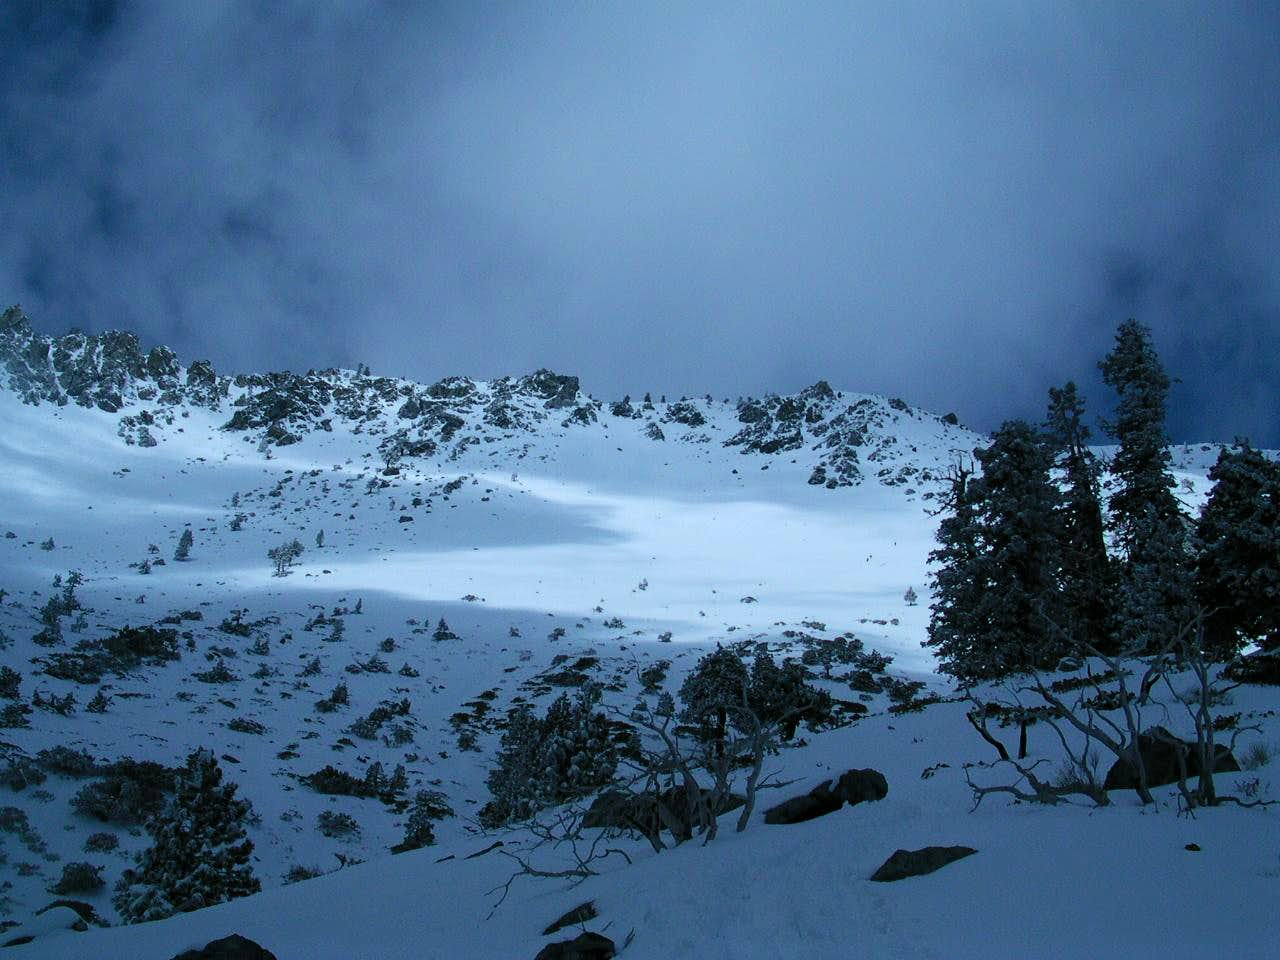 Ski Hut Trail in oncoming storm